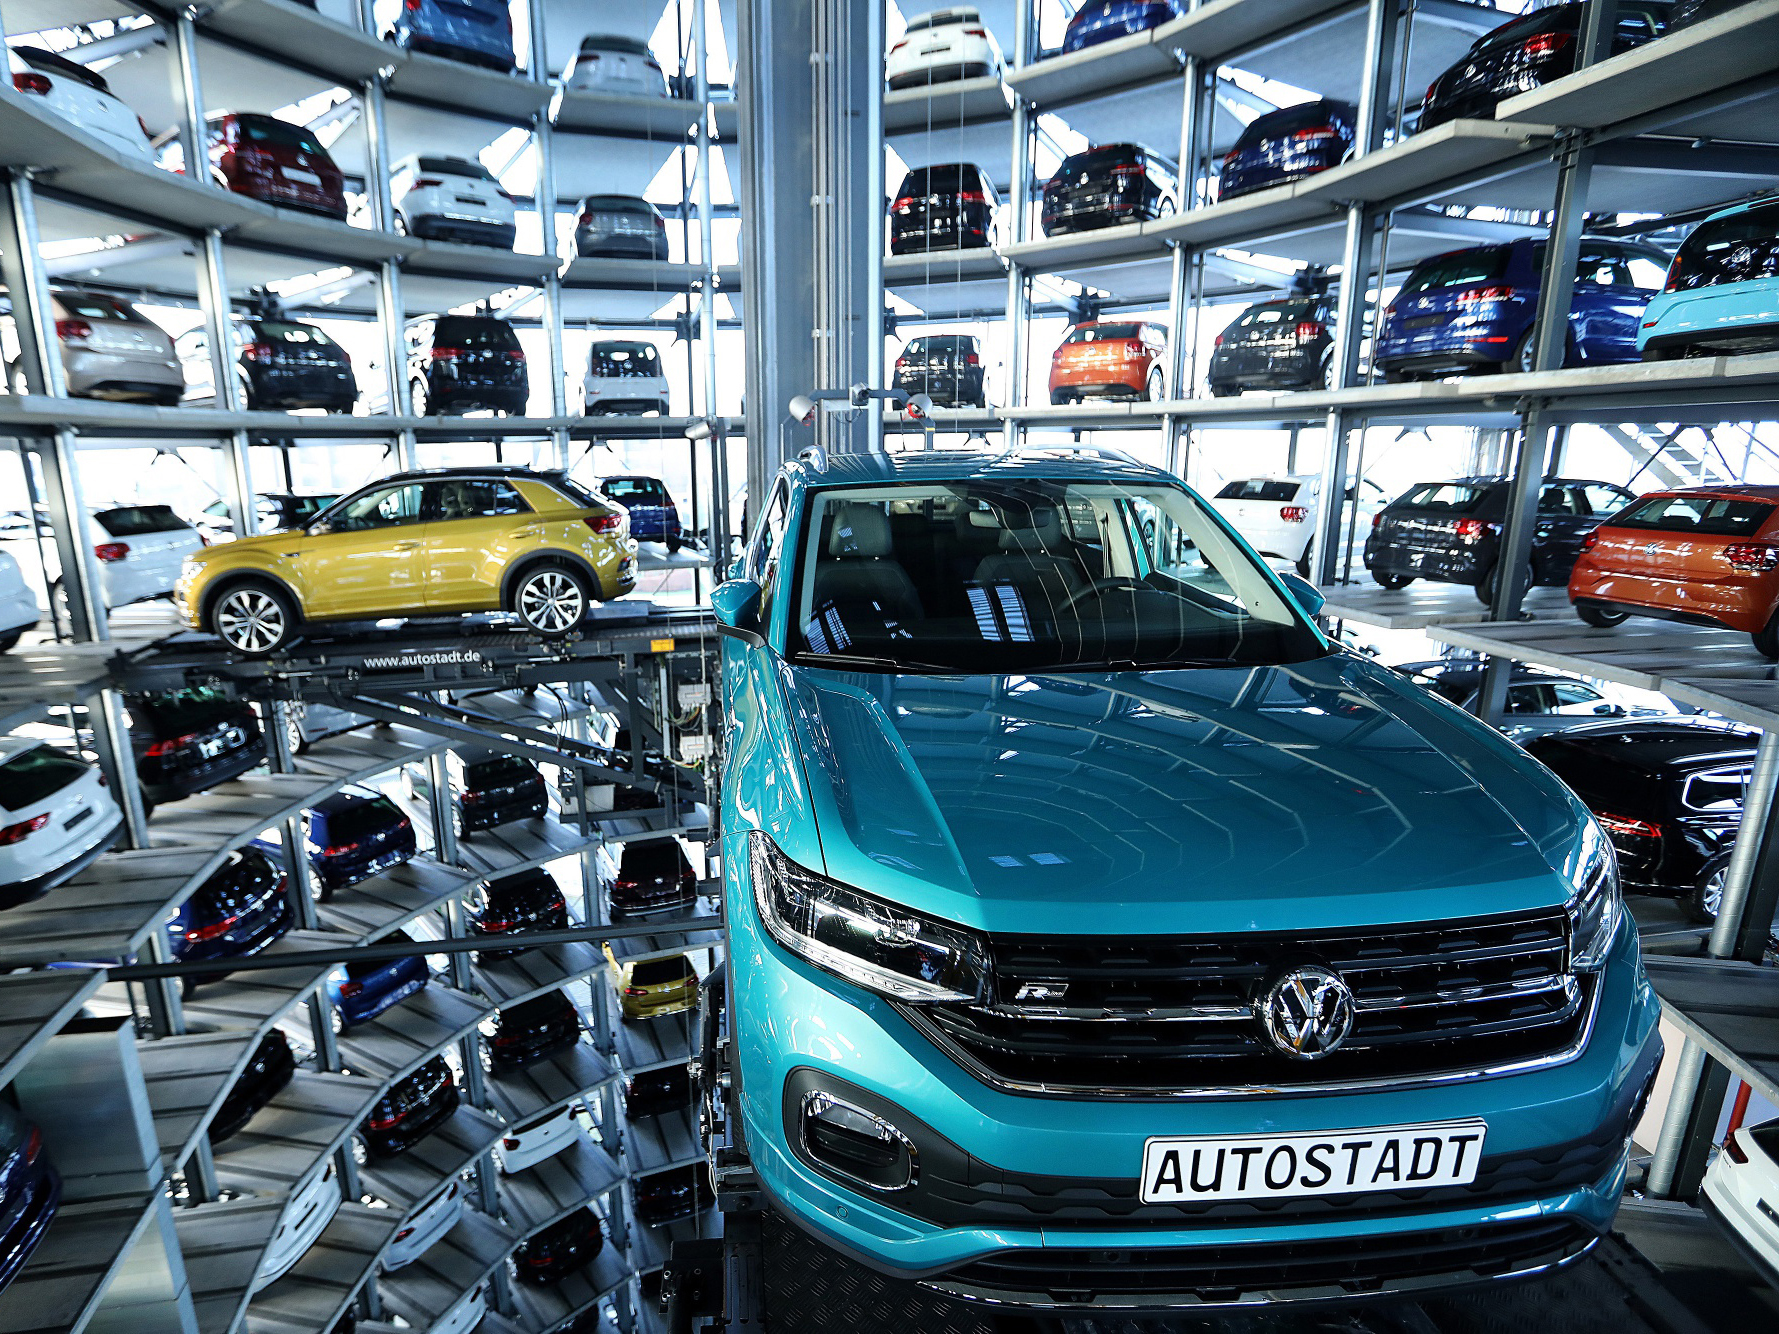 VW Brand to Trim as Many as 4,000 Jobs Amid Digital Overhaul